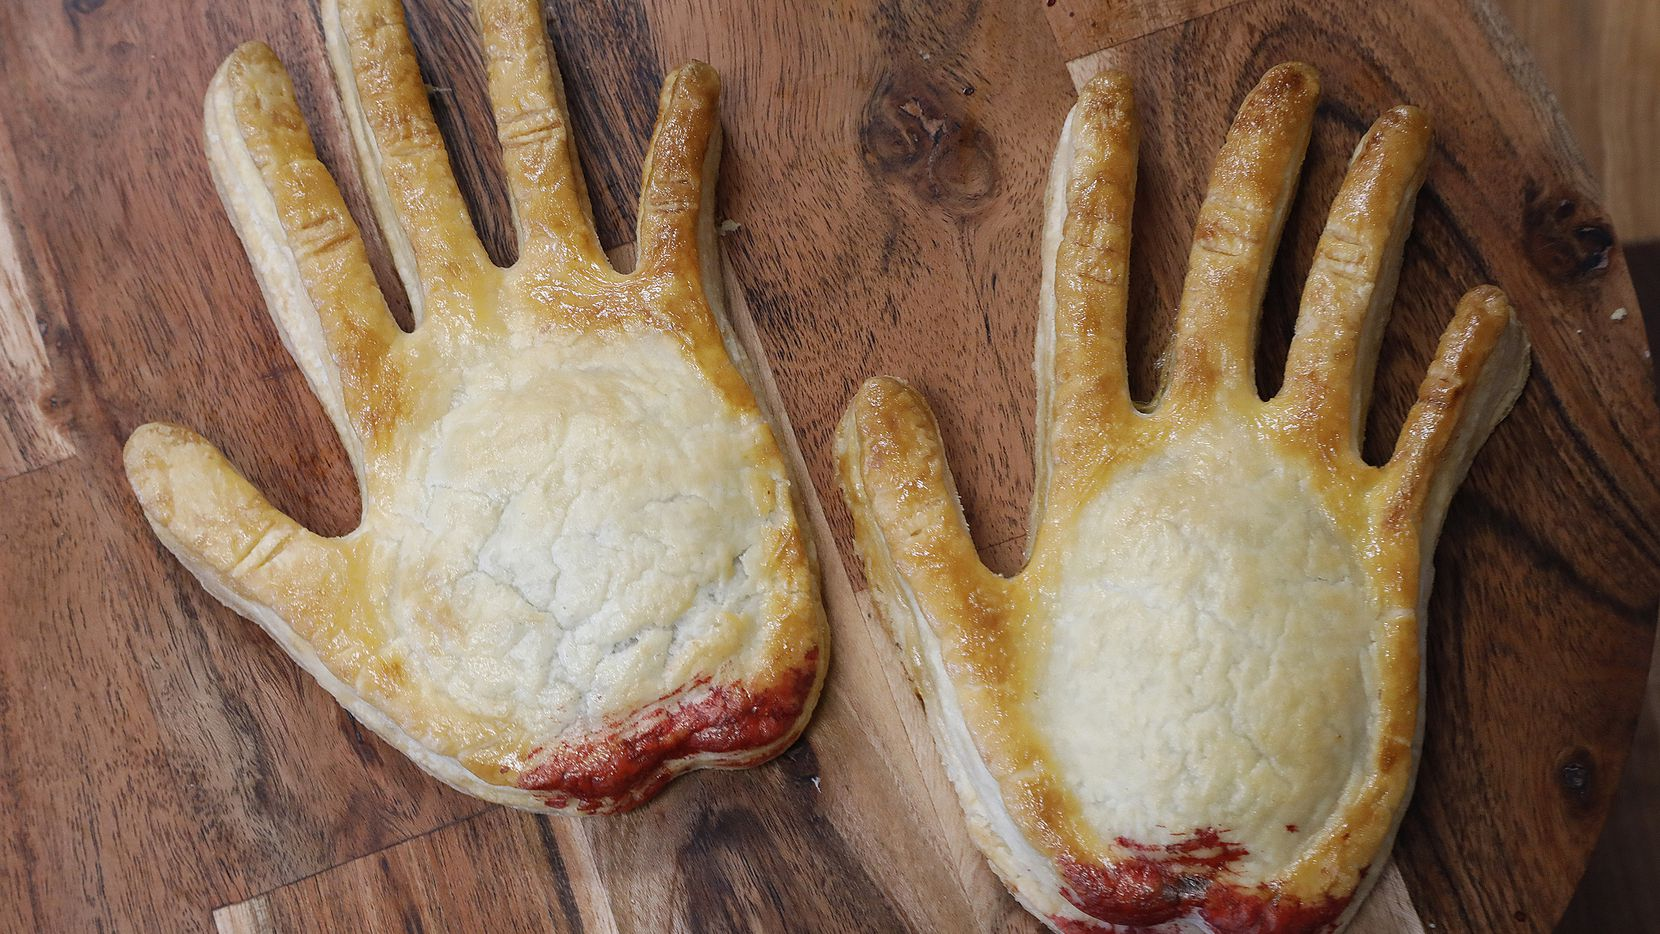 Cherry filled hand pies are on of the new pastries offered at La Casita Bake Shop in Richardson